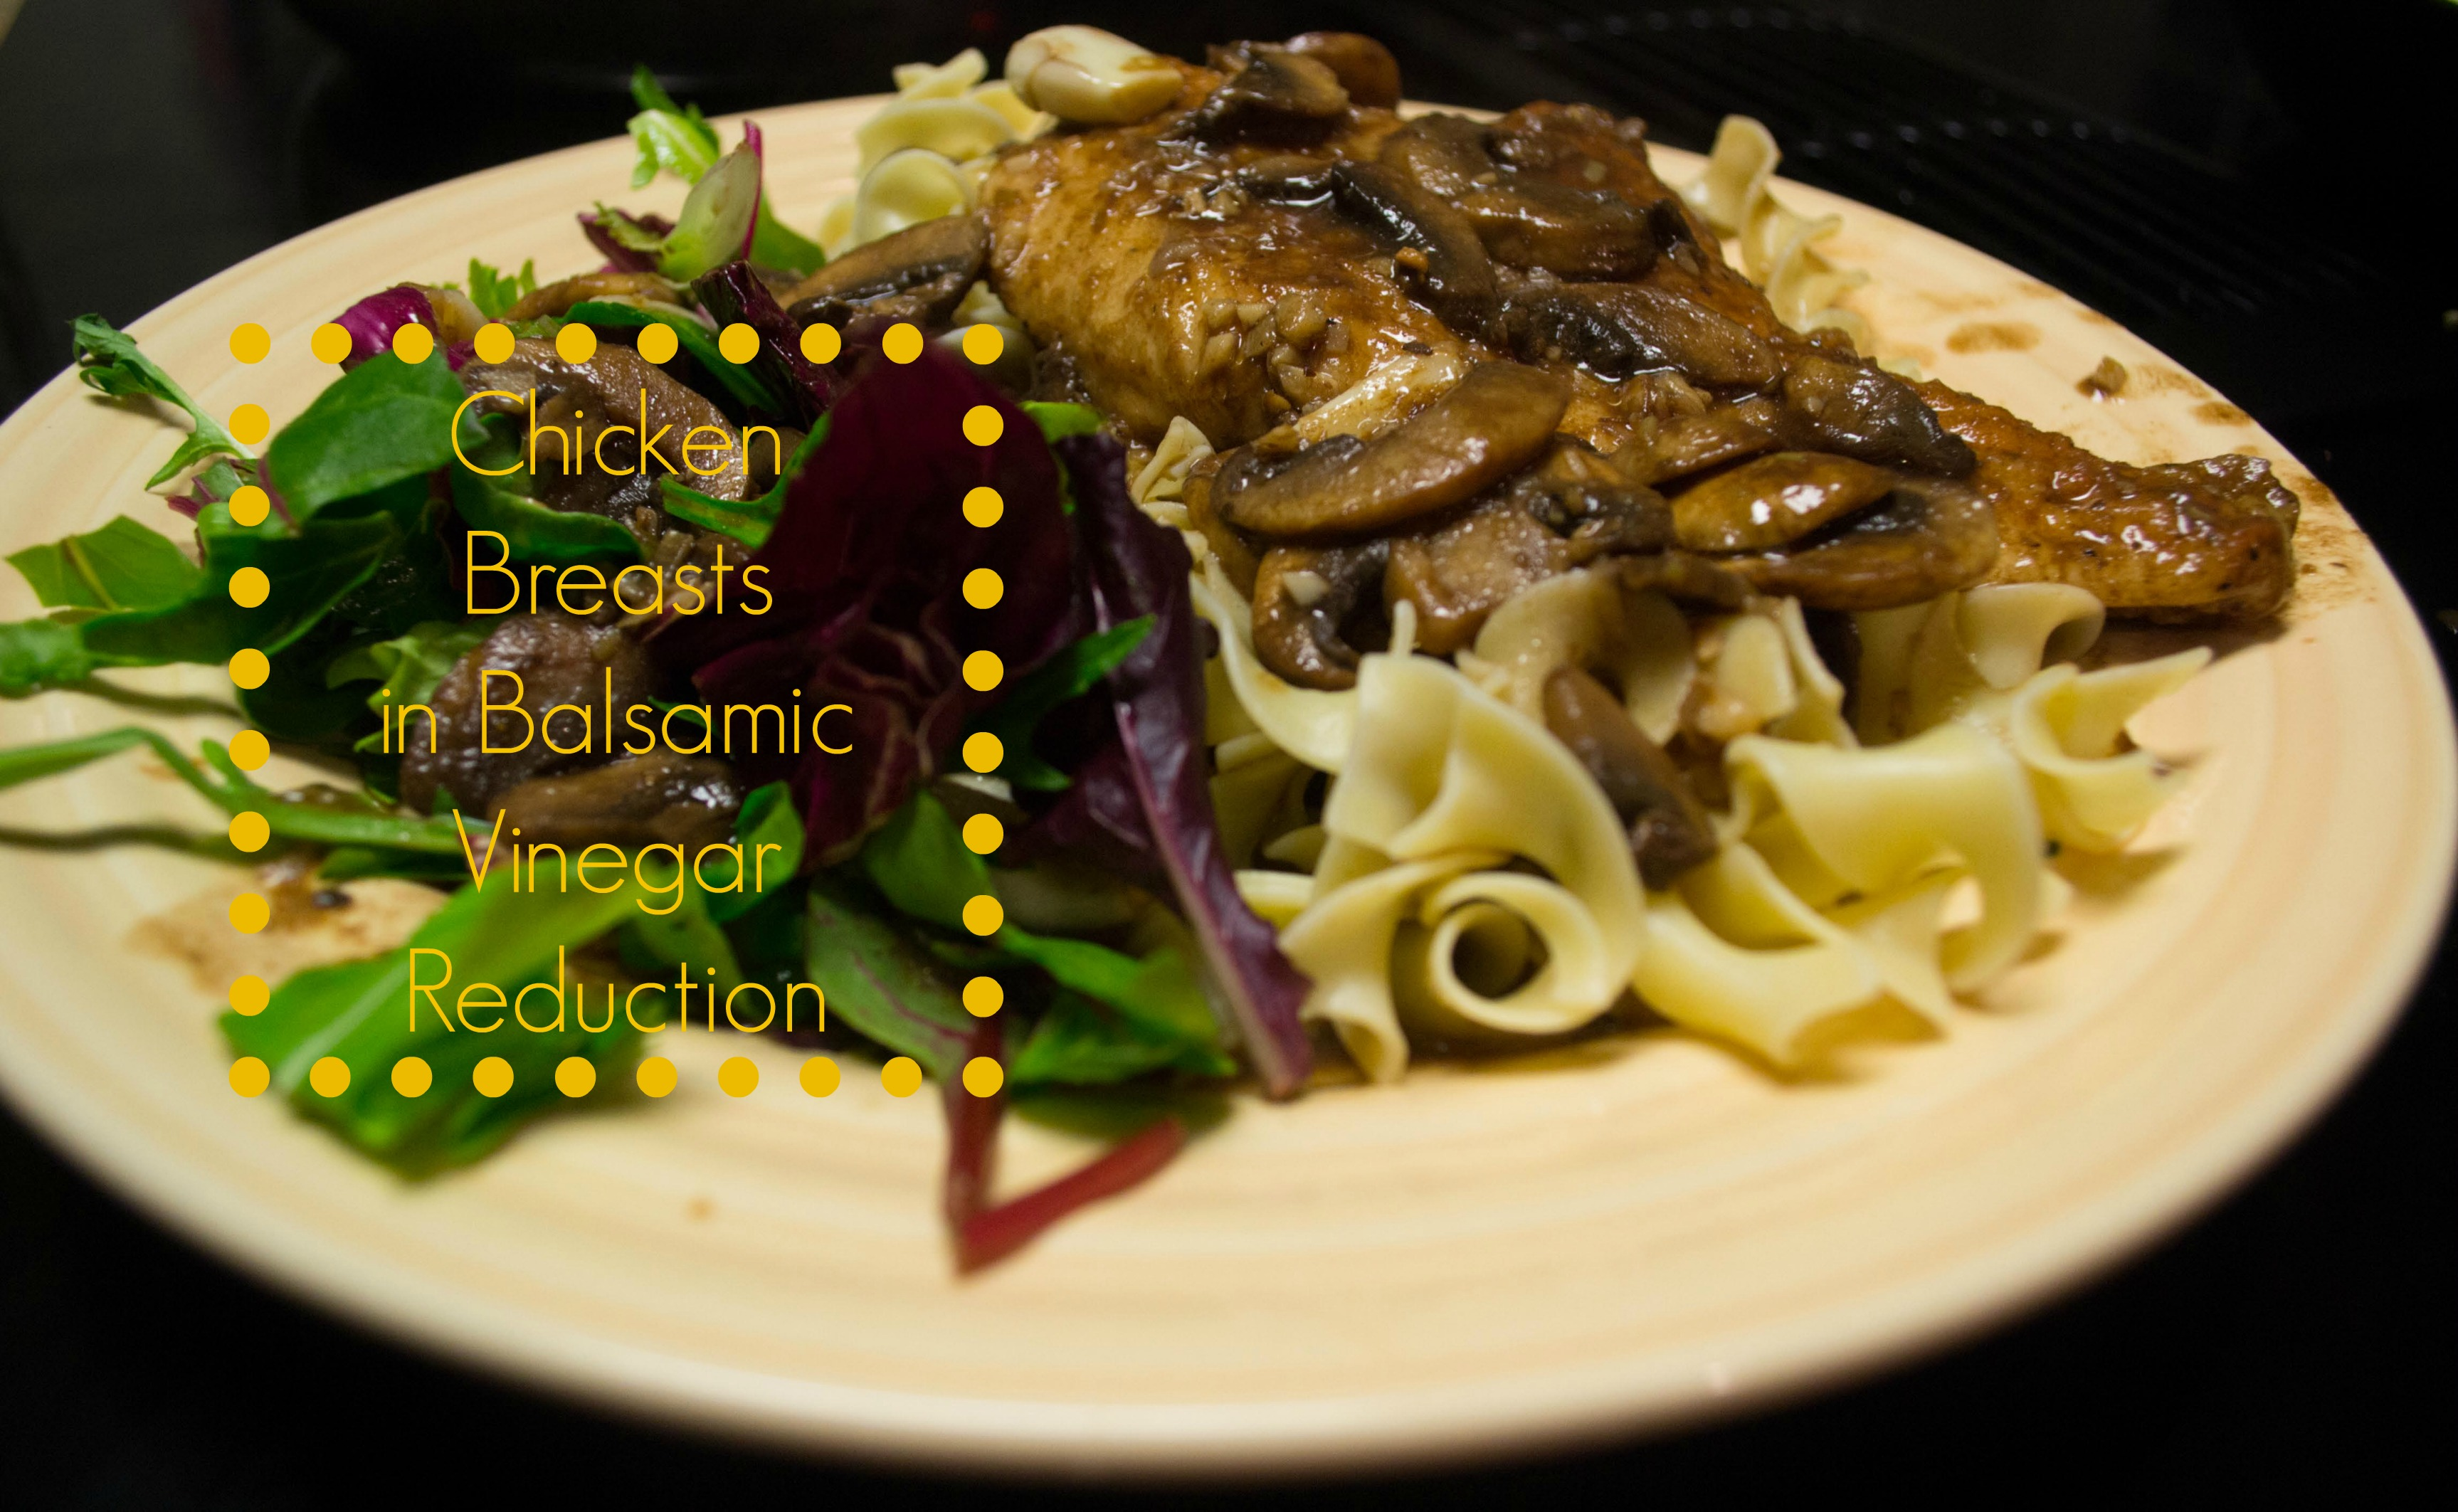 recipe for sauteed chicken in balsamic vinegar reduction